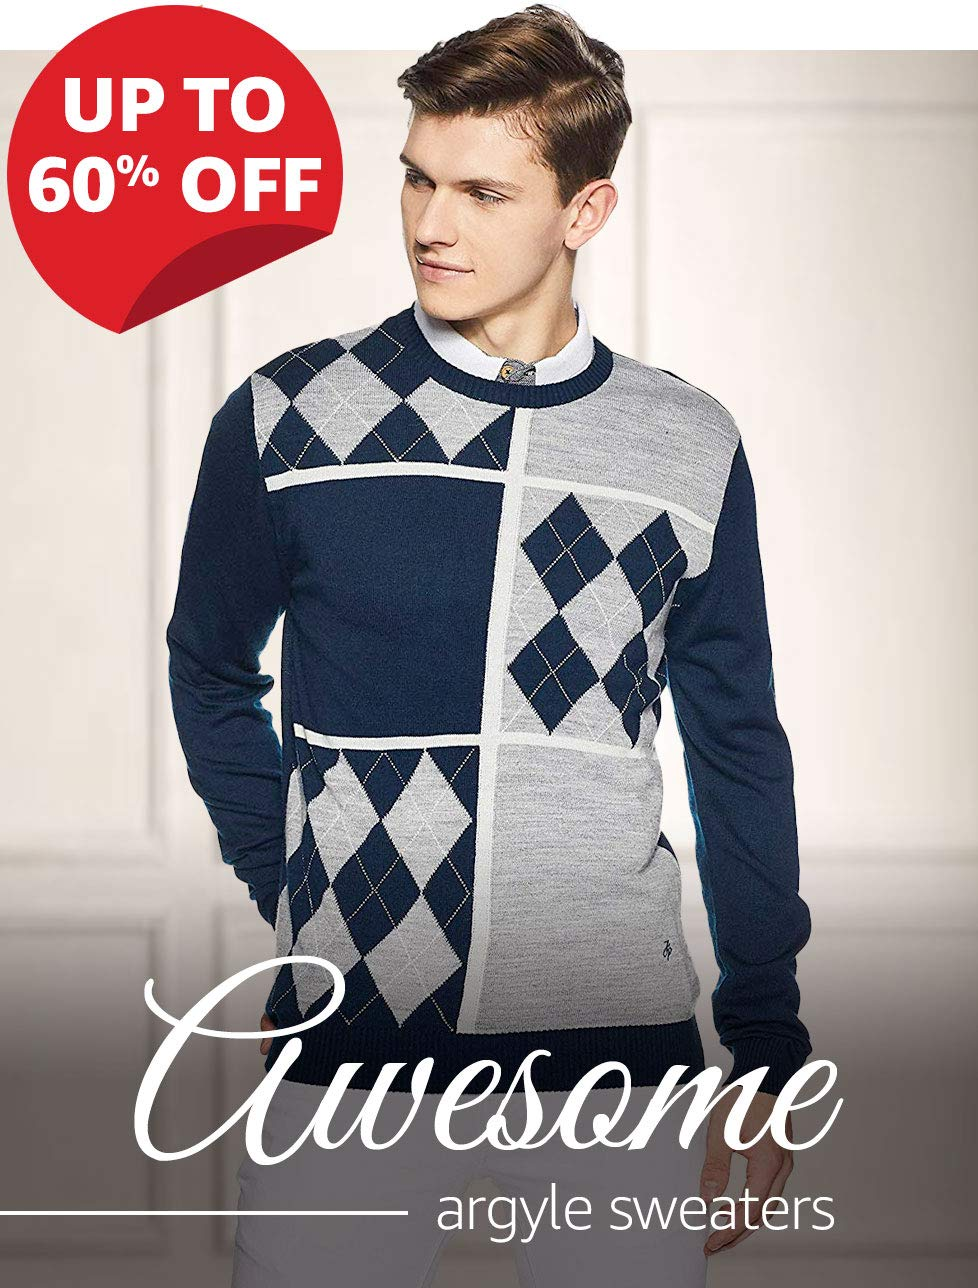 Awesome argyle sweaters